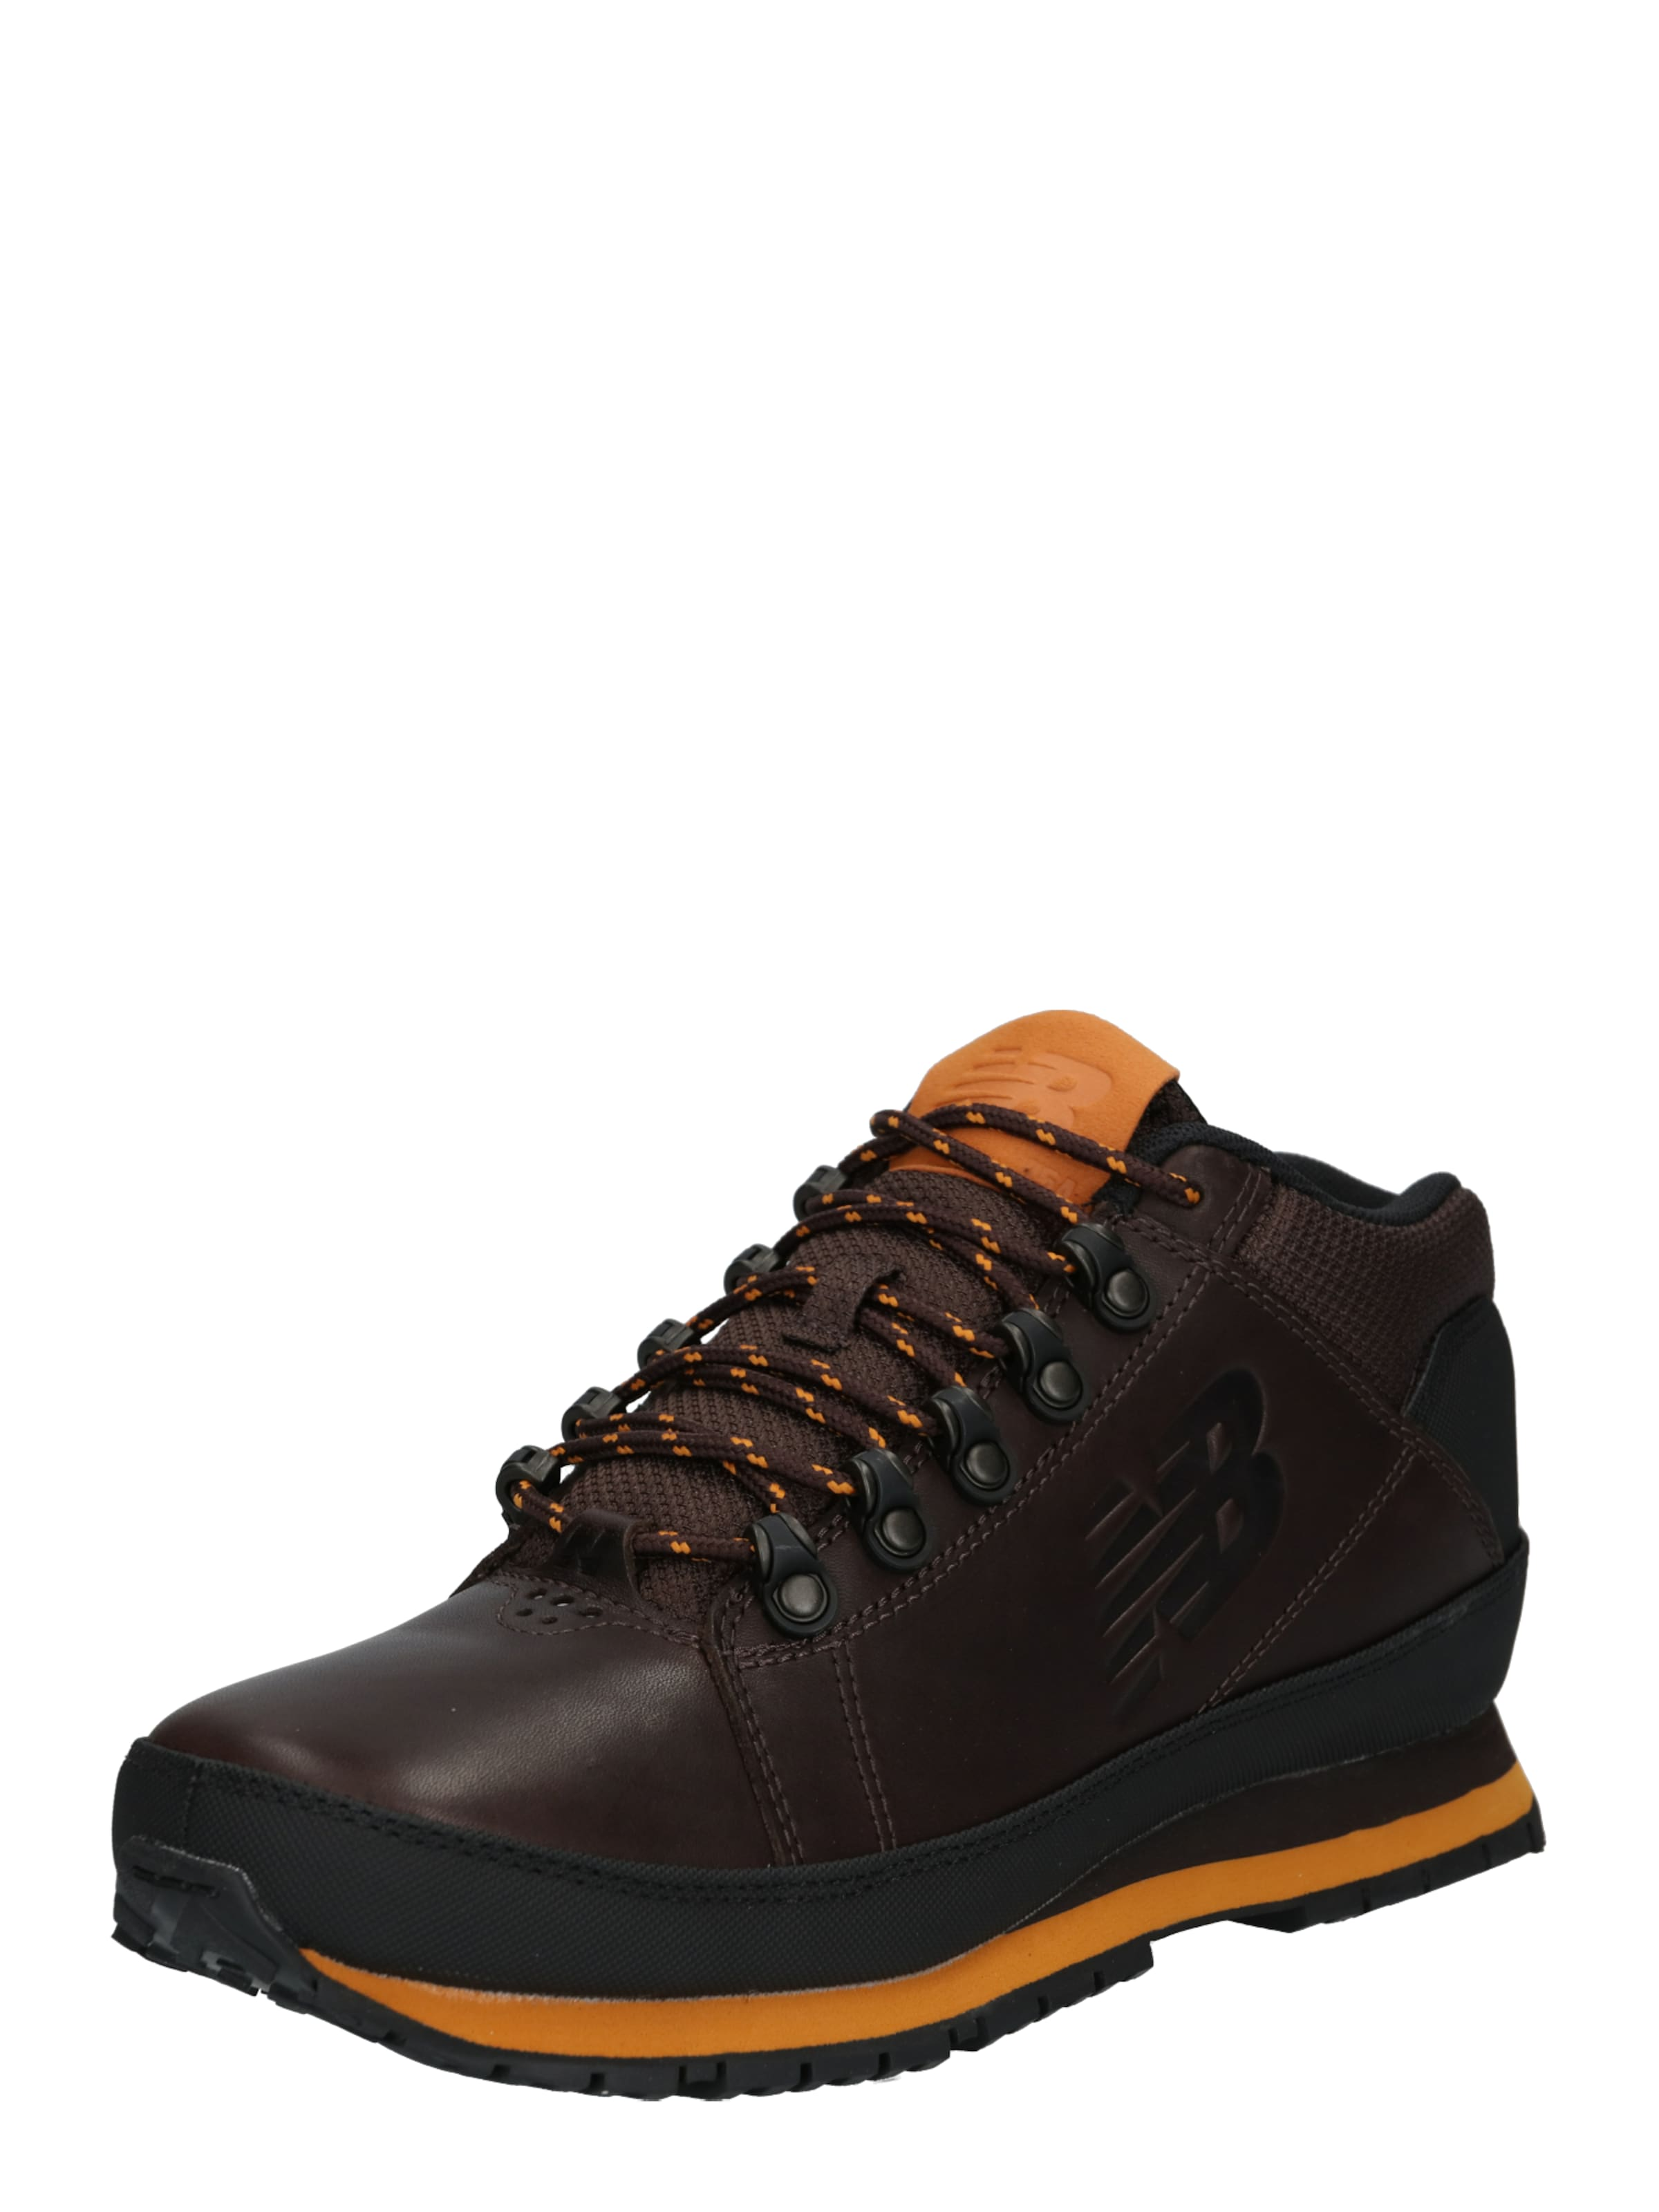 In New BraunGrau Sneaker Balance 'h 754' eWHIYED29